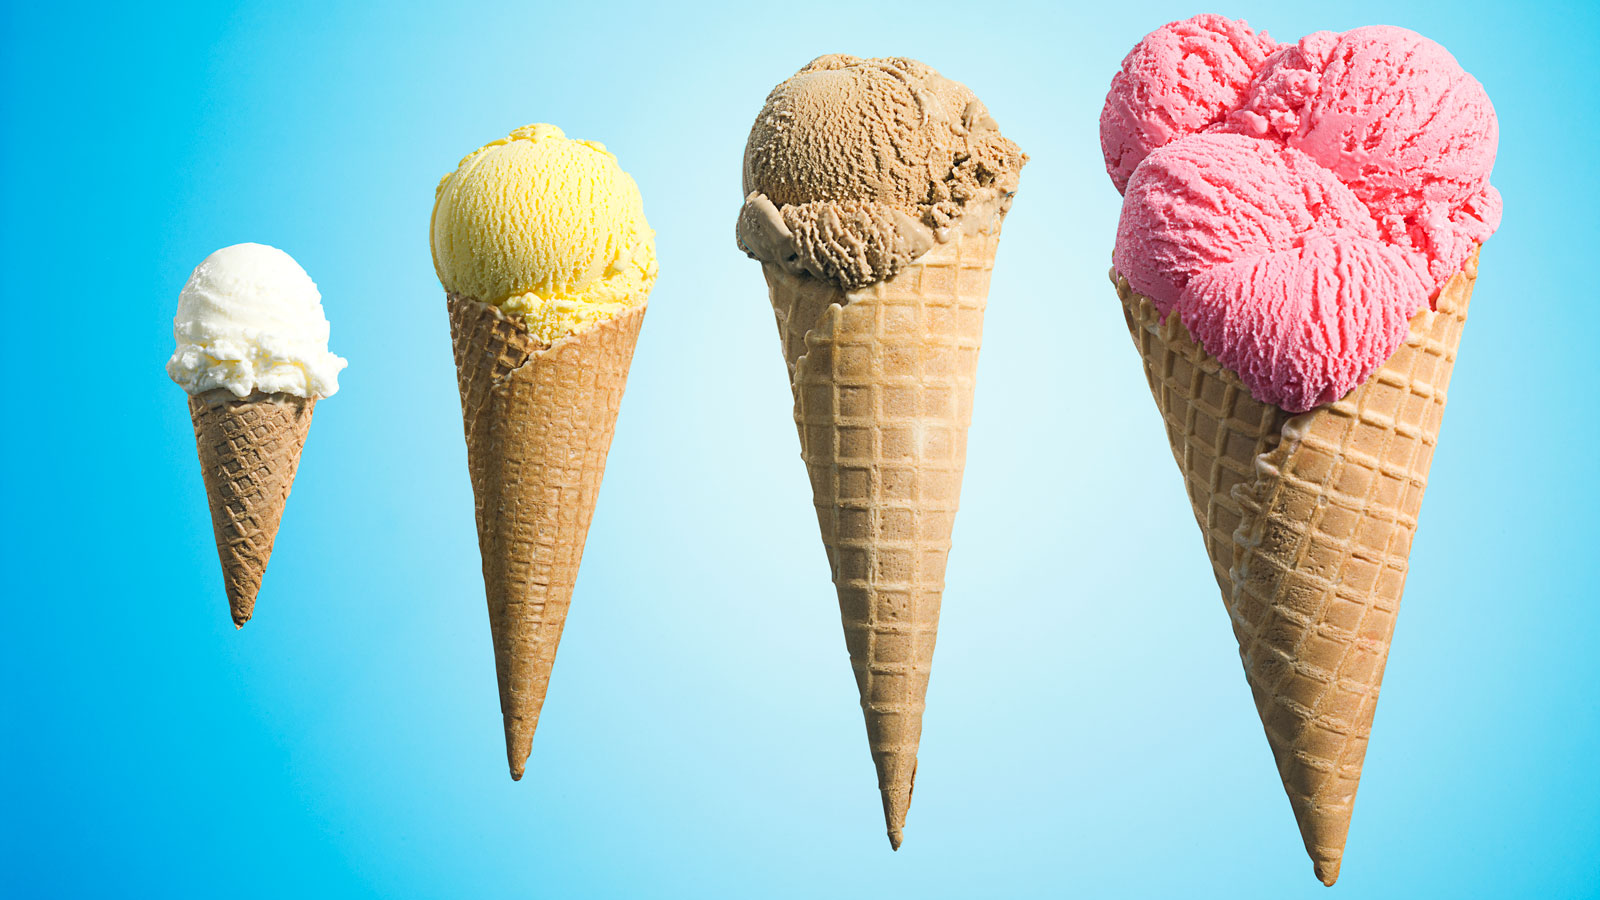 ice-cream-cones-history-FT-BLOG0617.jpg